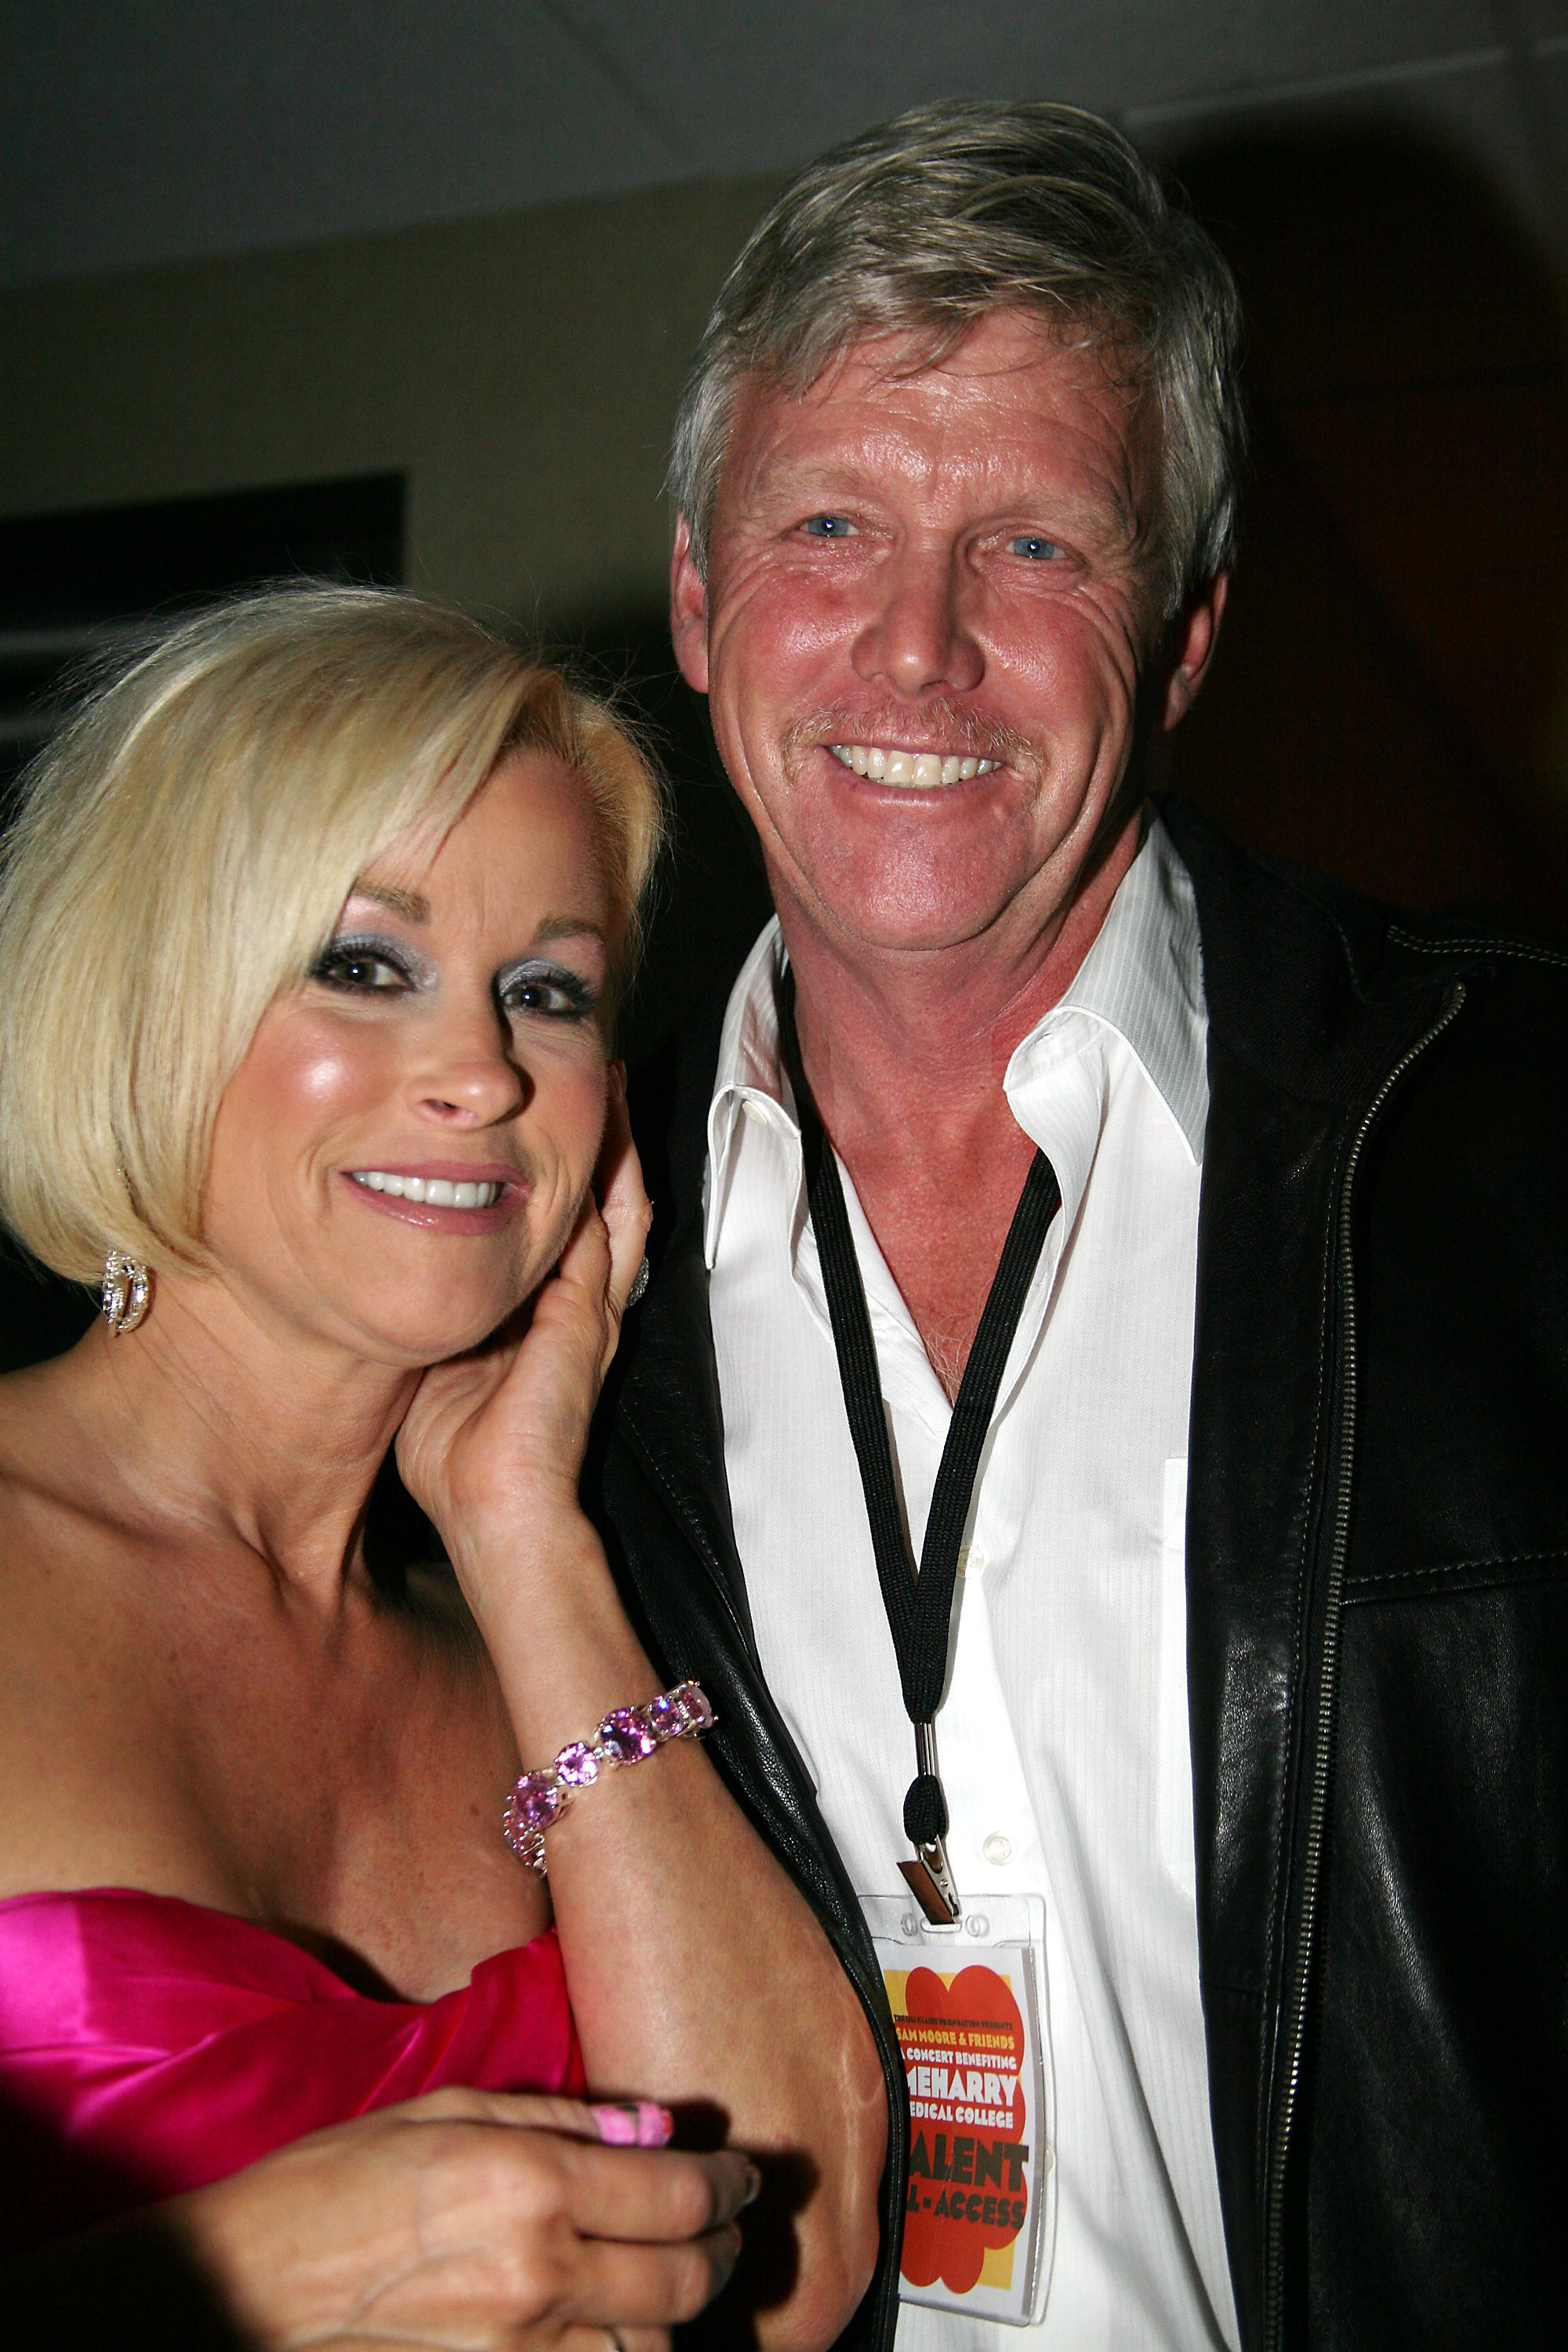 Lorrie Morgan And Randy White At The Lili Claire